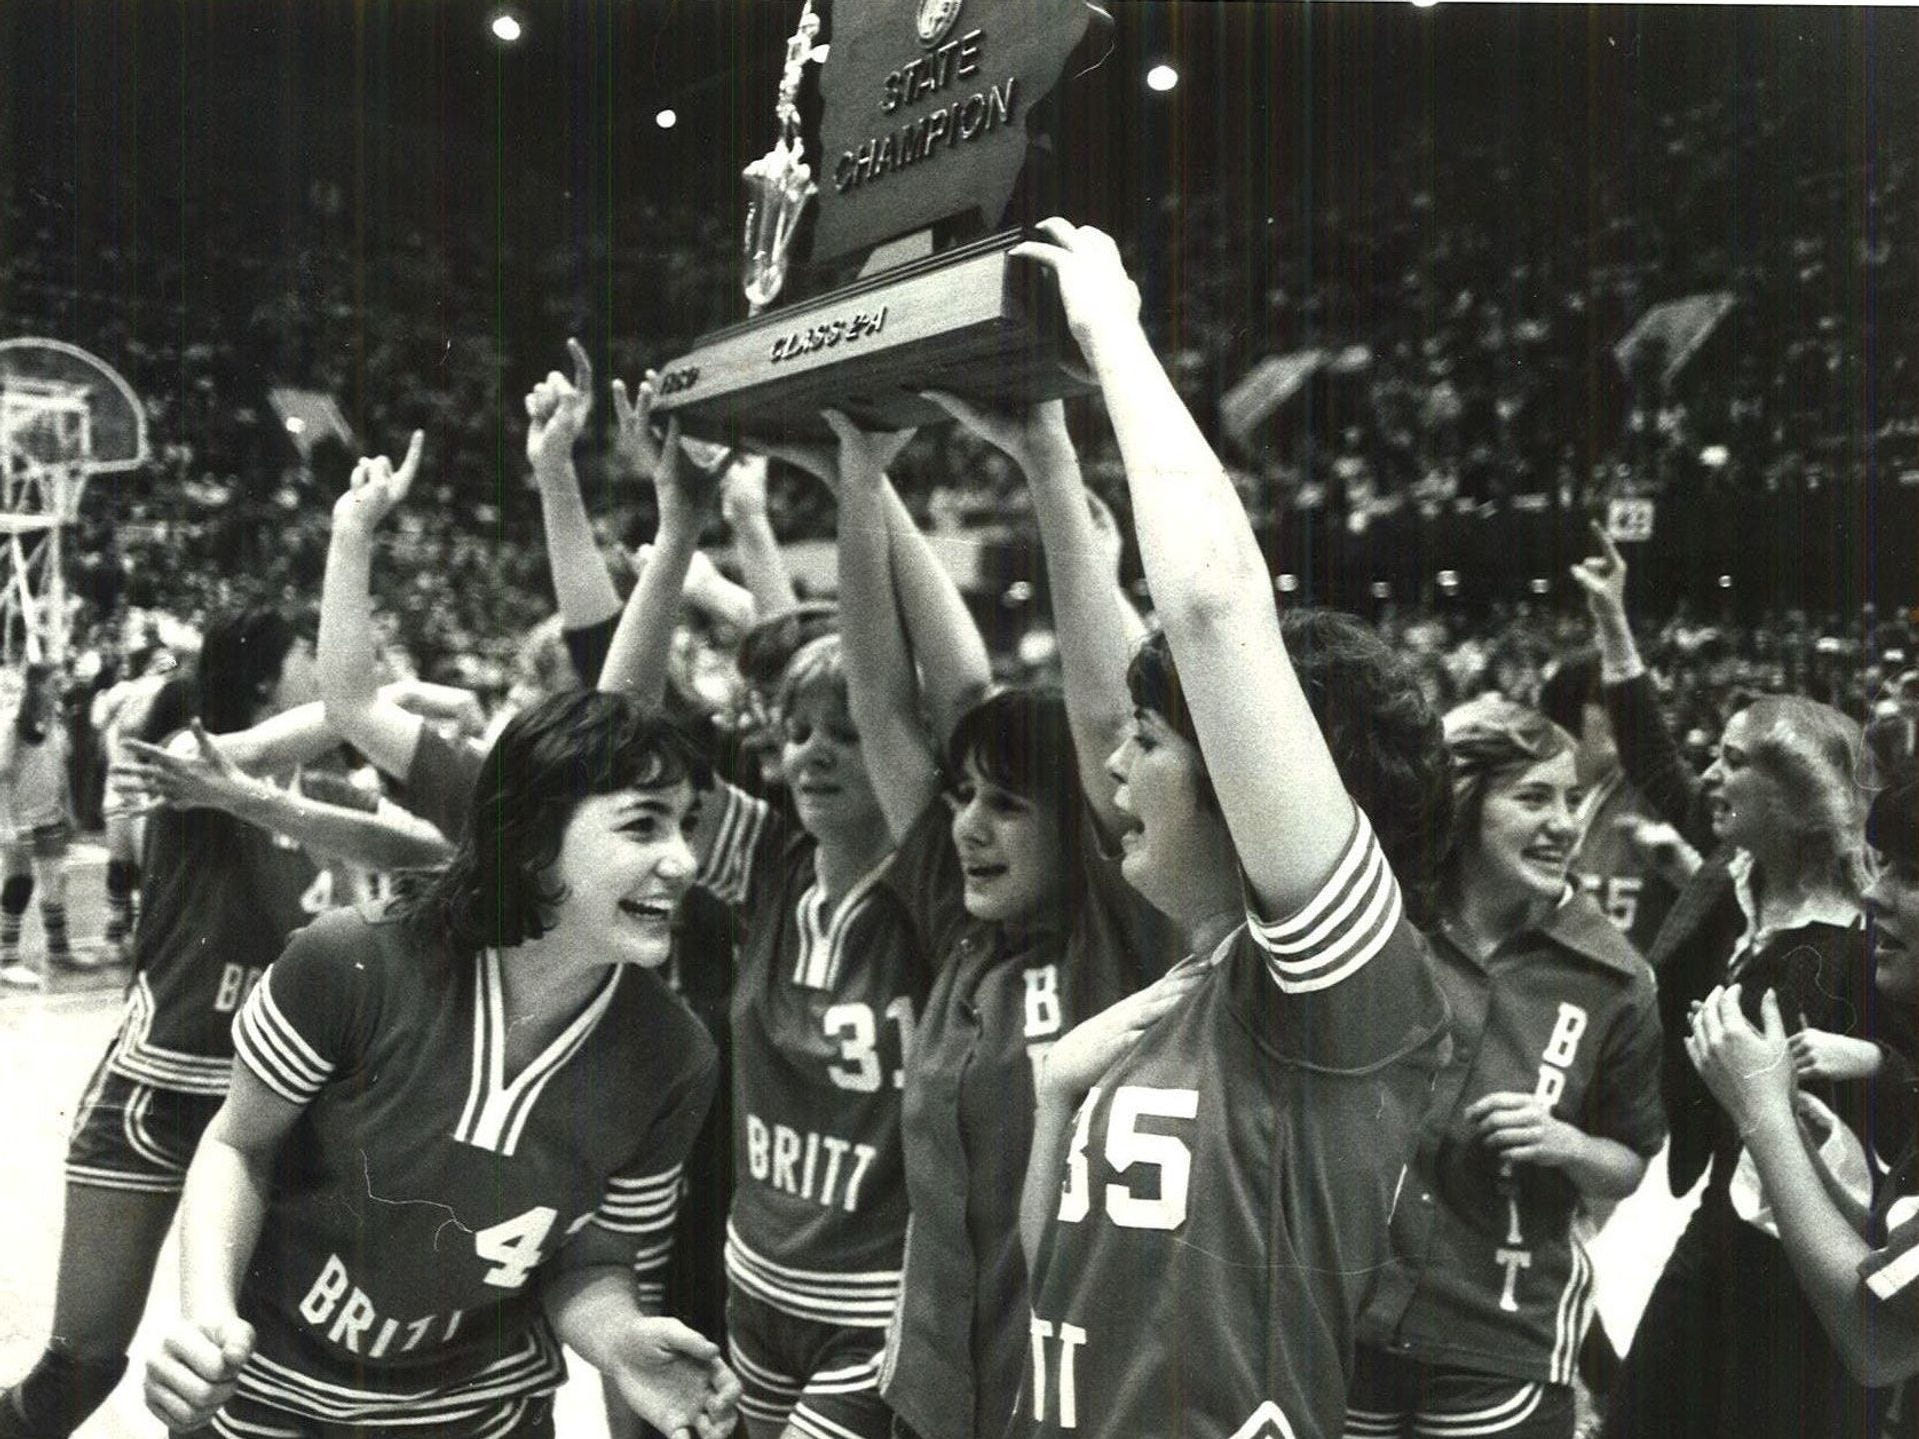 1980: Britt's Class 2-A champion E'Gals earn their first state title, 62-61. Register file photo